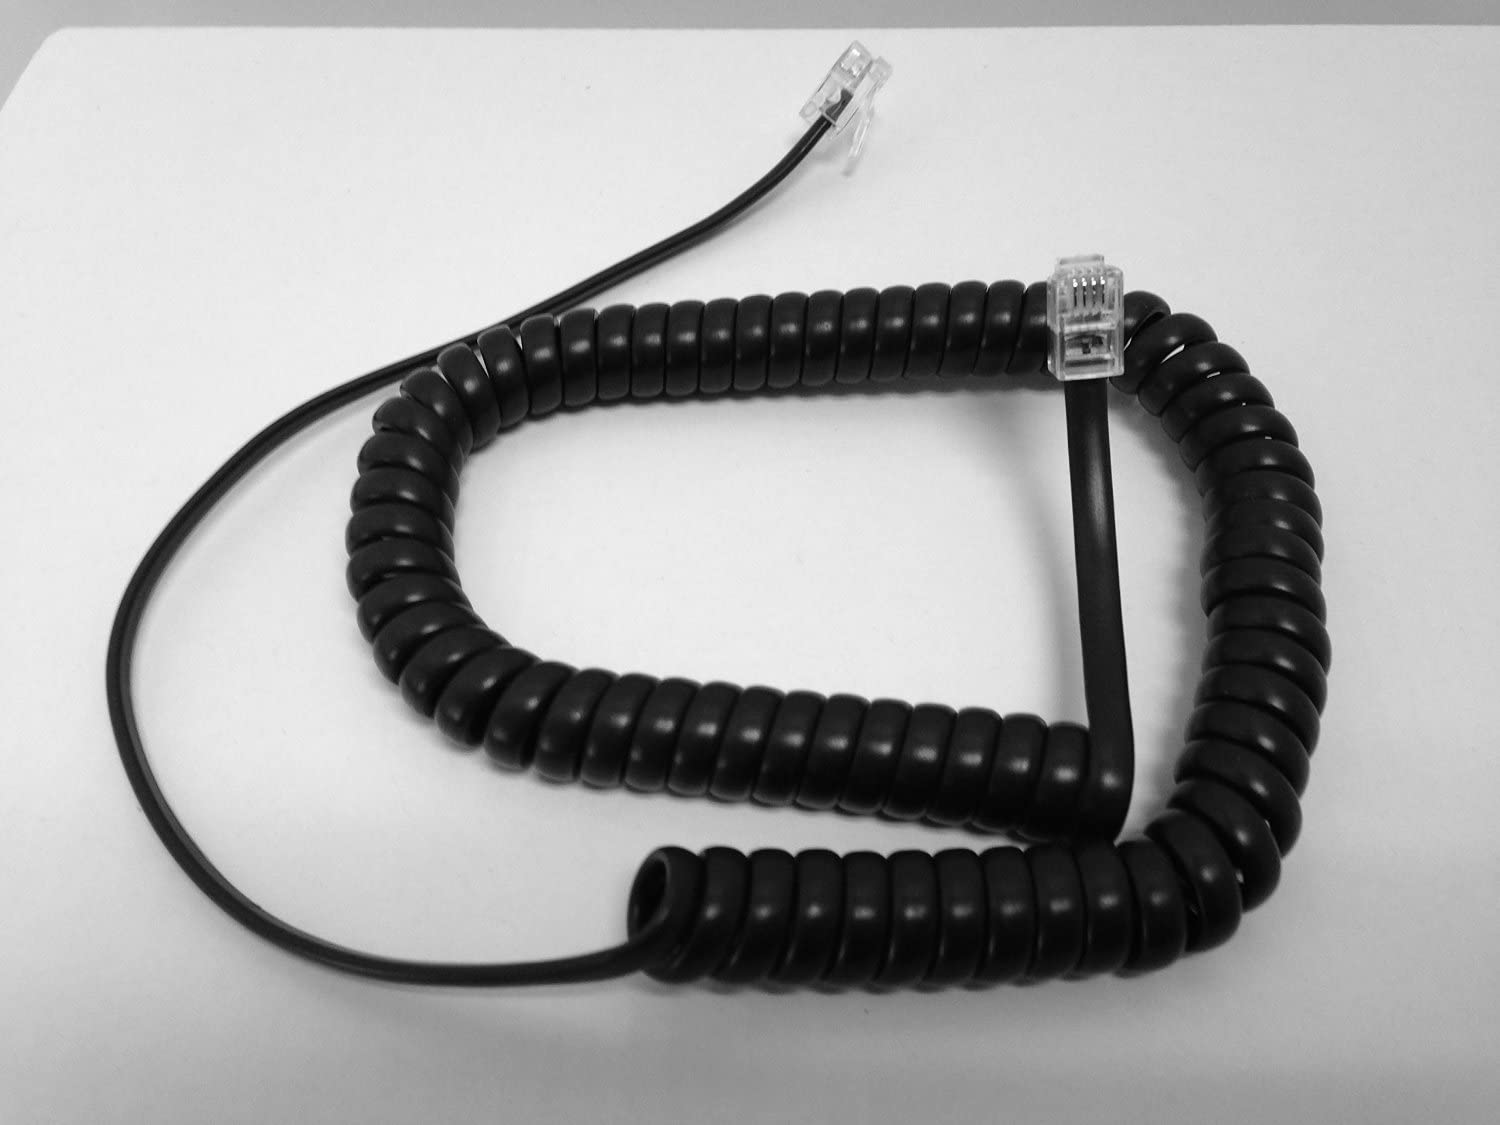 The VoIP Lounge Replacement 9 Foot Black Handset Receiver Curly Cord for Avaya IP Office 1400 and 1600 Series Phone 1403 1408 1416 1603 1608 1616